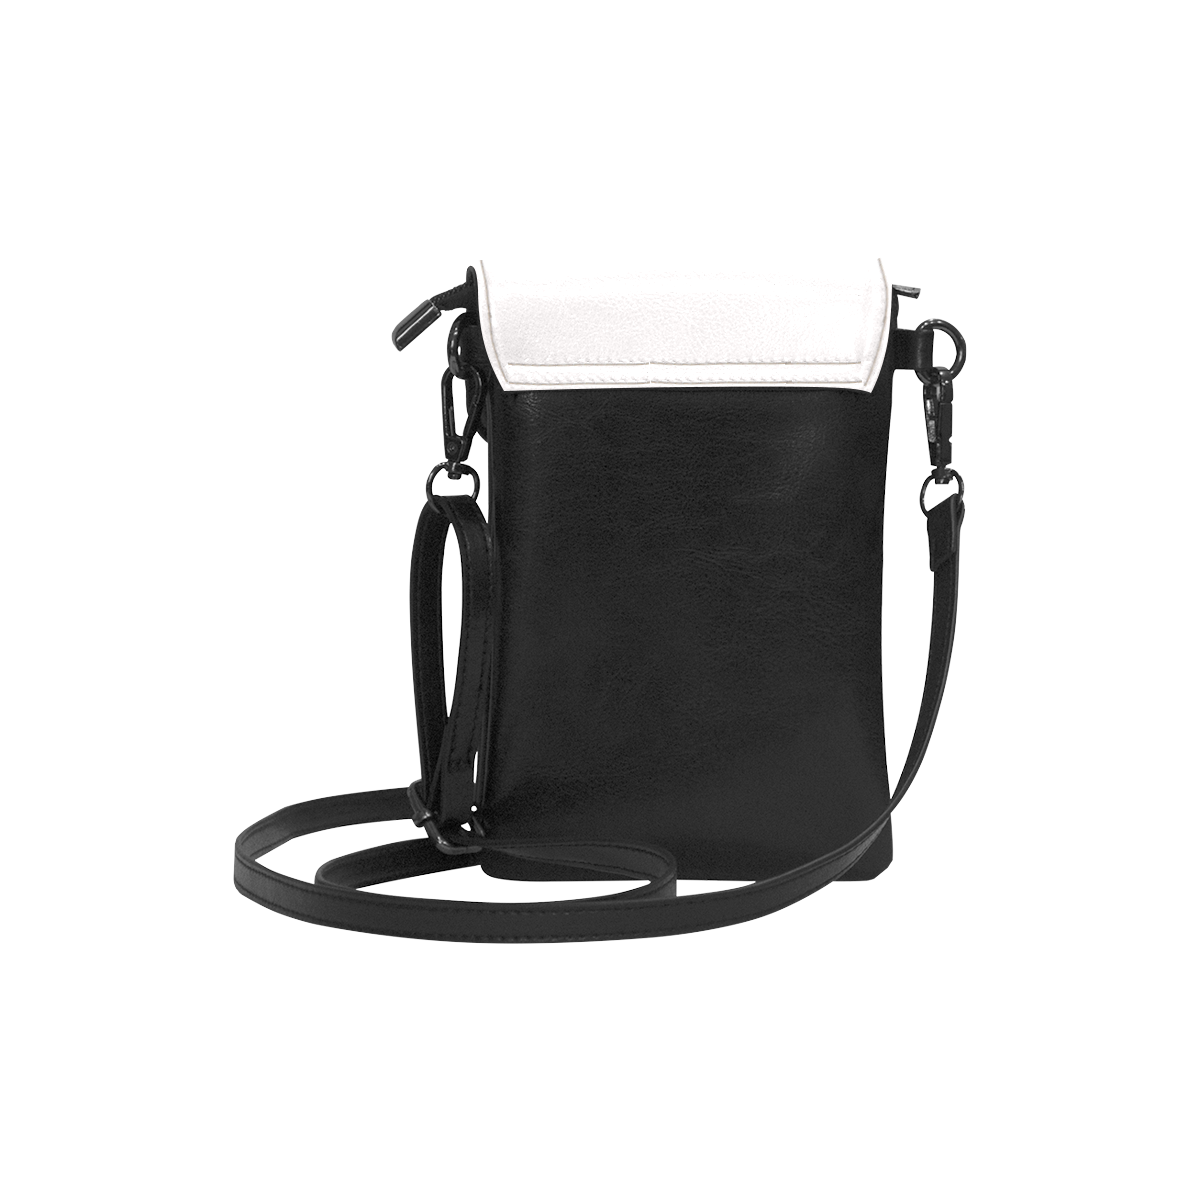 Small Cell Phone Purse (Model 1711)